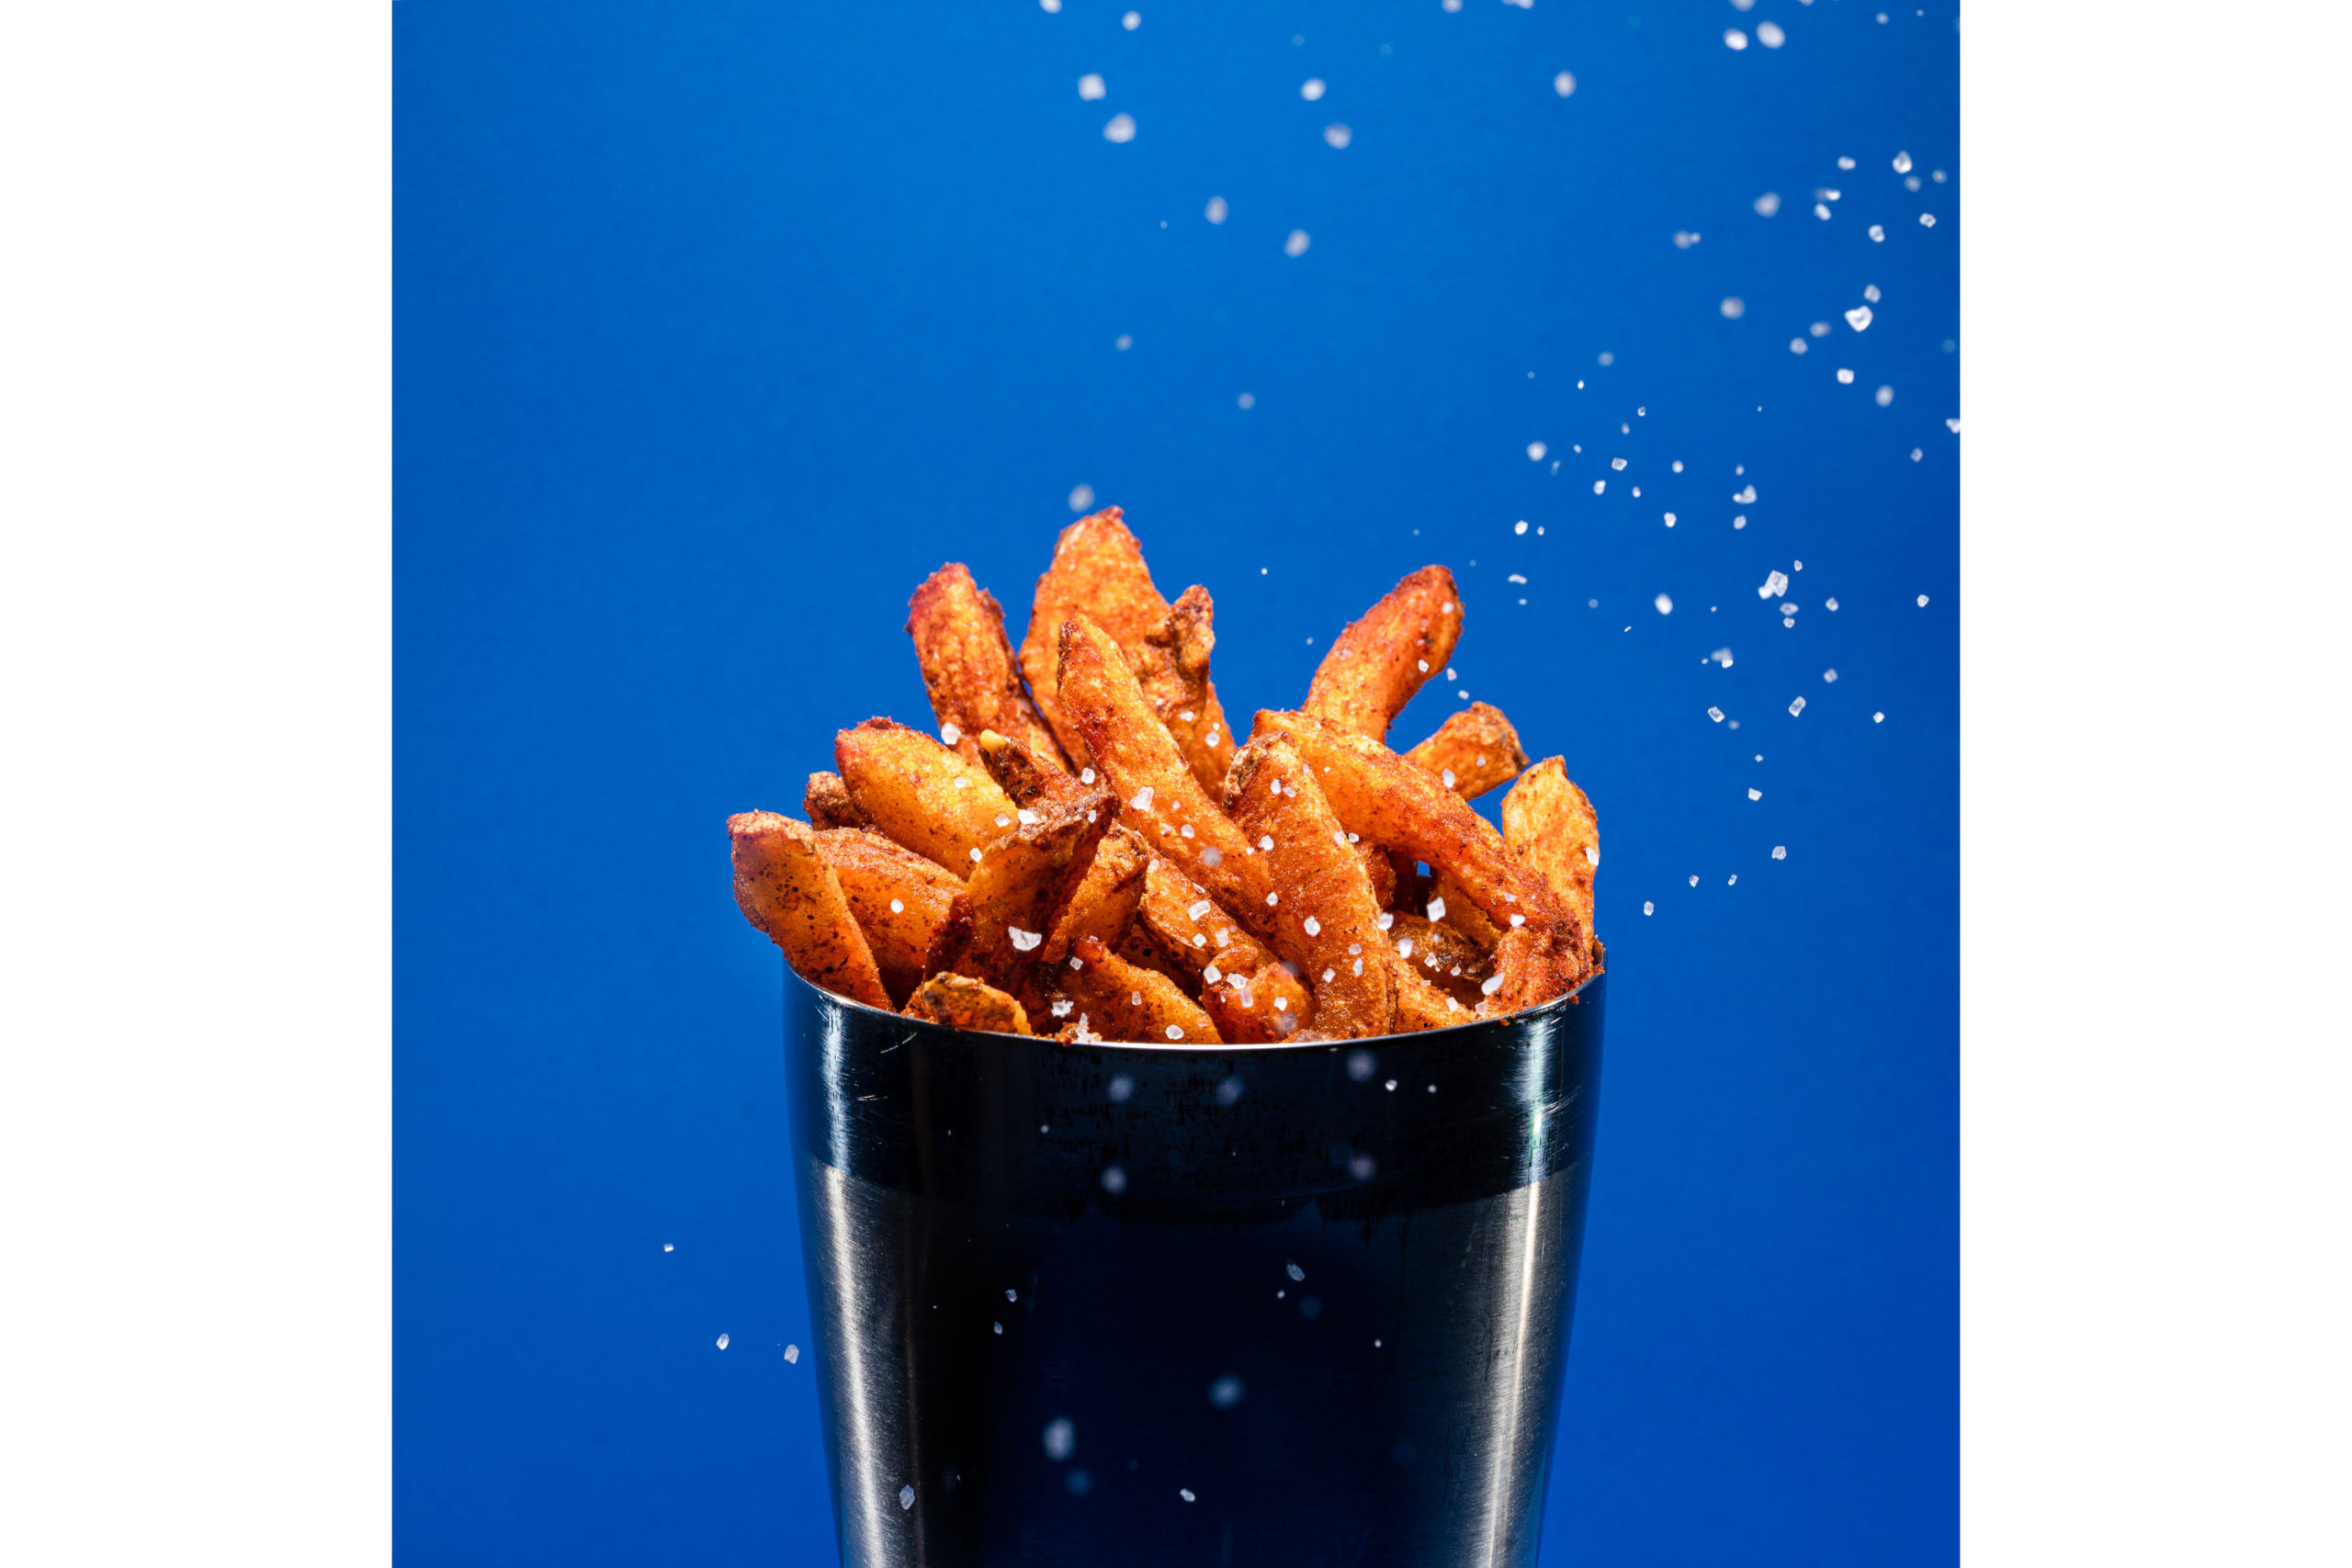 Commercial-Food-8